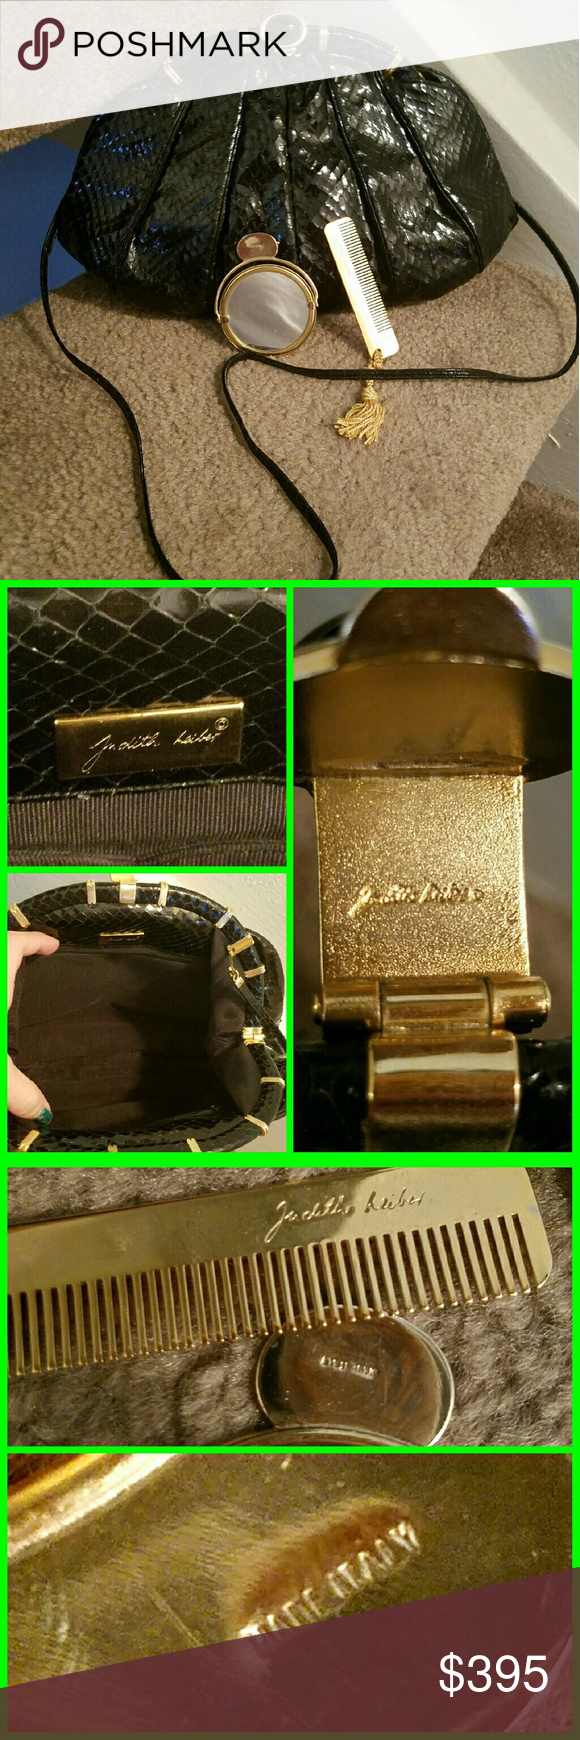 """Vintage JUDITH LEIBER Reptile Purse/ACCESSORIES ****RARE JUDITH LEIBER WITH ORIGINAL ACCESSORIES ****  AUTHENTIC 1980s JUDITH LEIBER Black Reptile shoulder bag (or Clutch!) in STUNNING VINTAGE CONDITION.   With Goldtone Signed hardware, this has original accessories- comb and mirror - with the Leiber signature. (Mirror also says MADE IN ITALY).   A Large 12"""" x 8"""" bag with 44"""" optional strap.   A VINTAGE DREAM BAG.....DO NOT MISS!! Vintage Bags Shoulder Bags"""